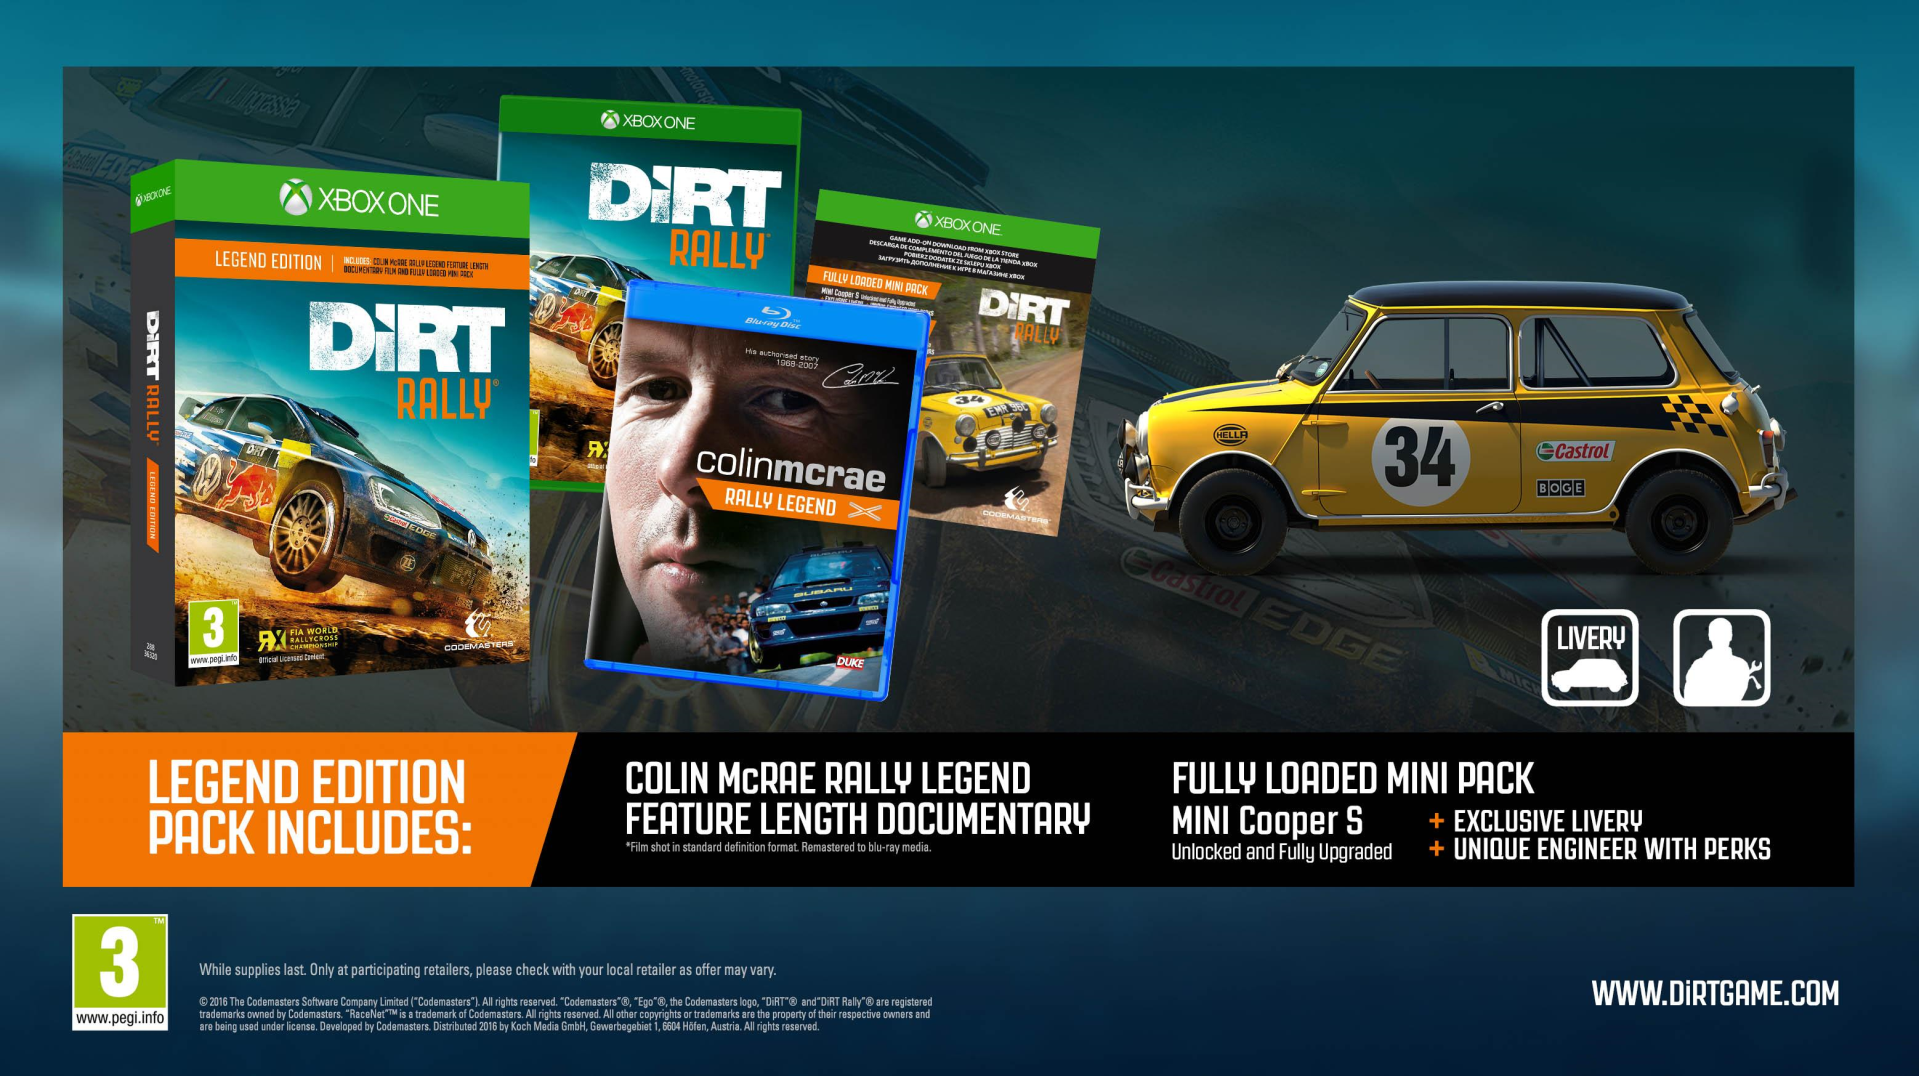 Xbox One Dirt Rally Legend Edition